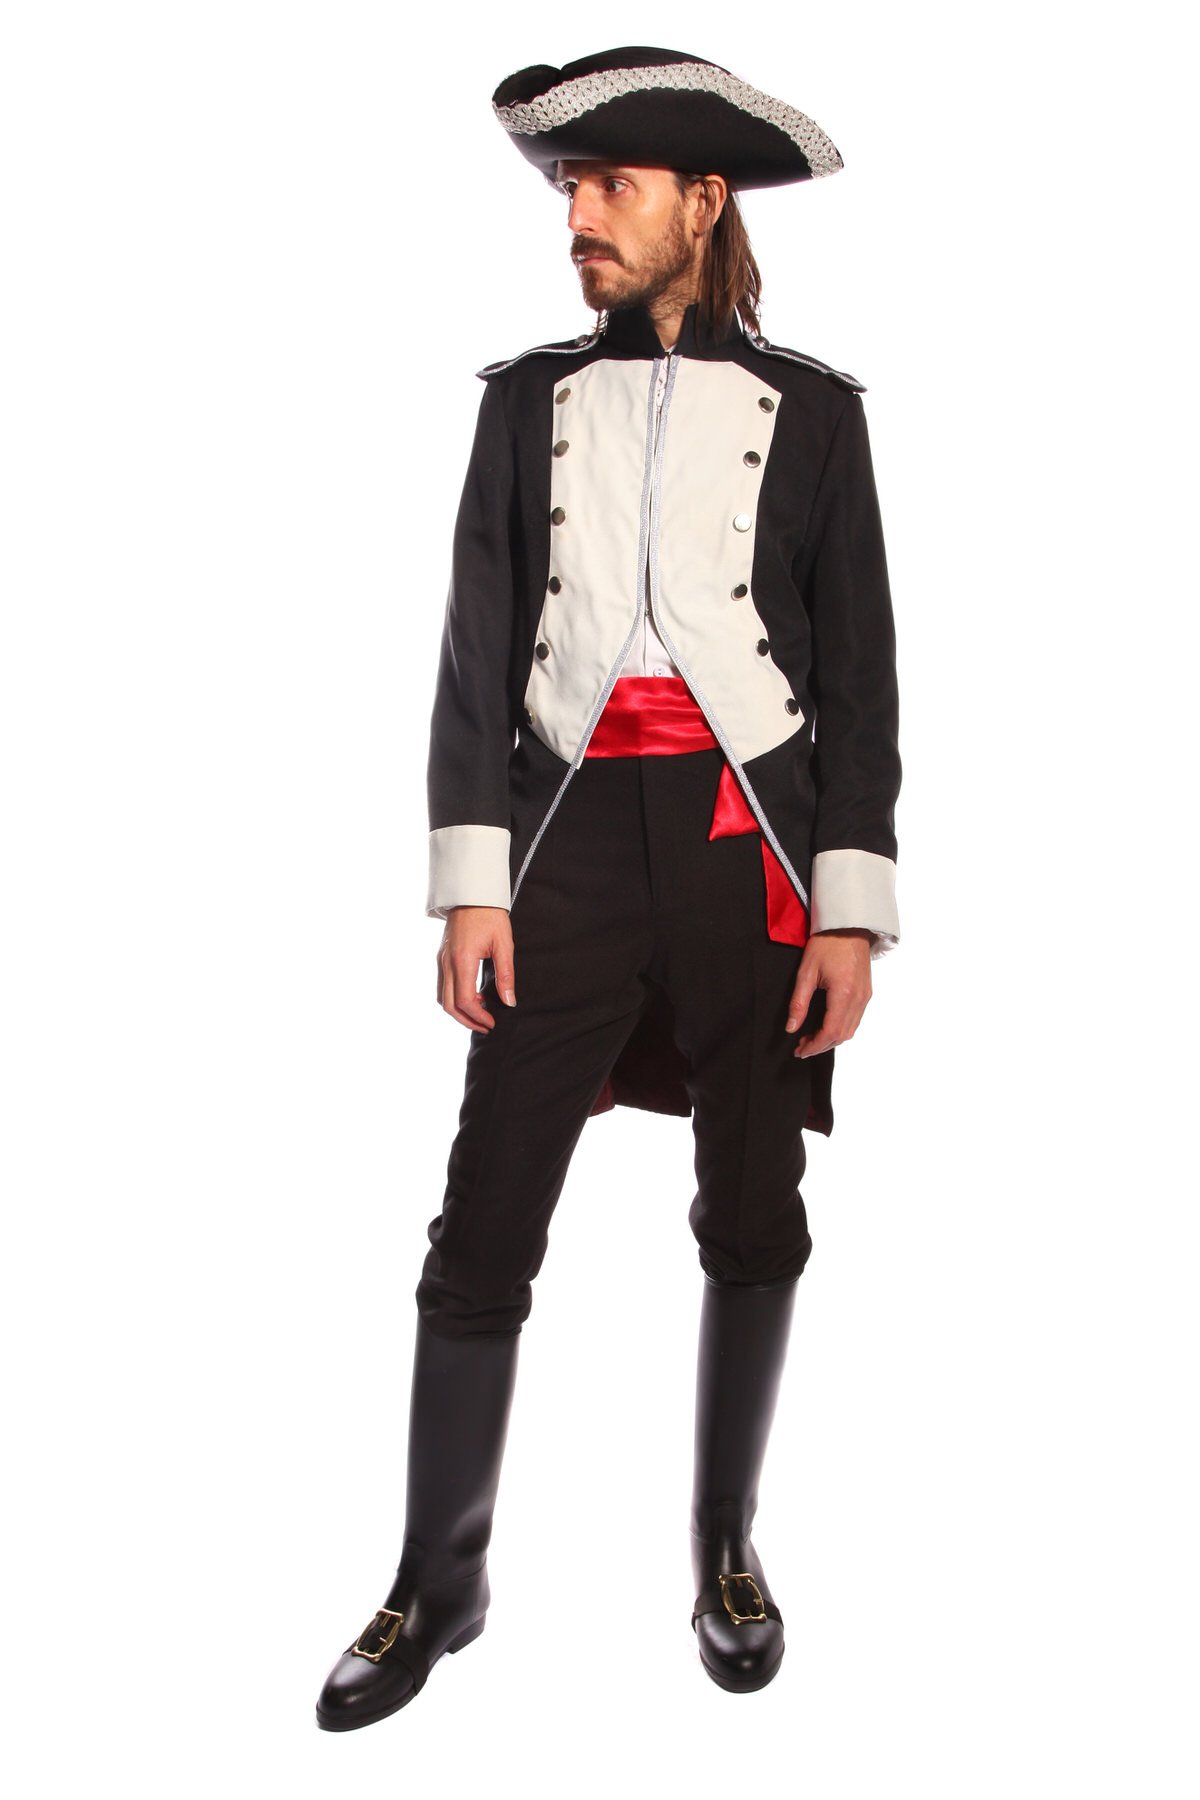 BLUE COAT NAVAL MAN'S COSTUME W LONG BOOTS